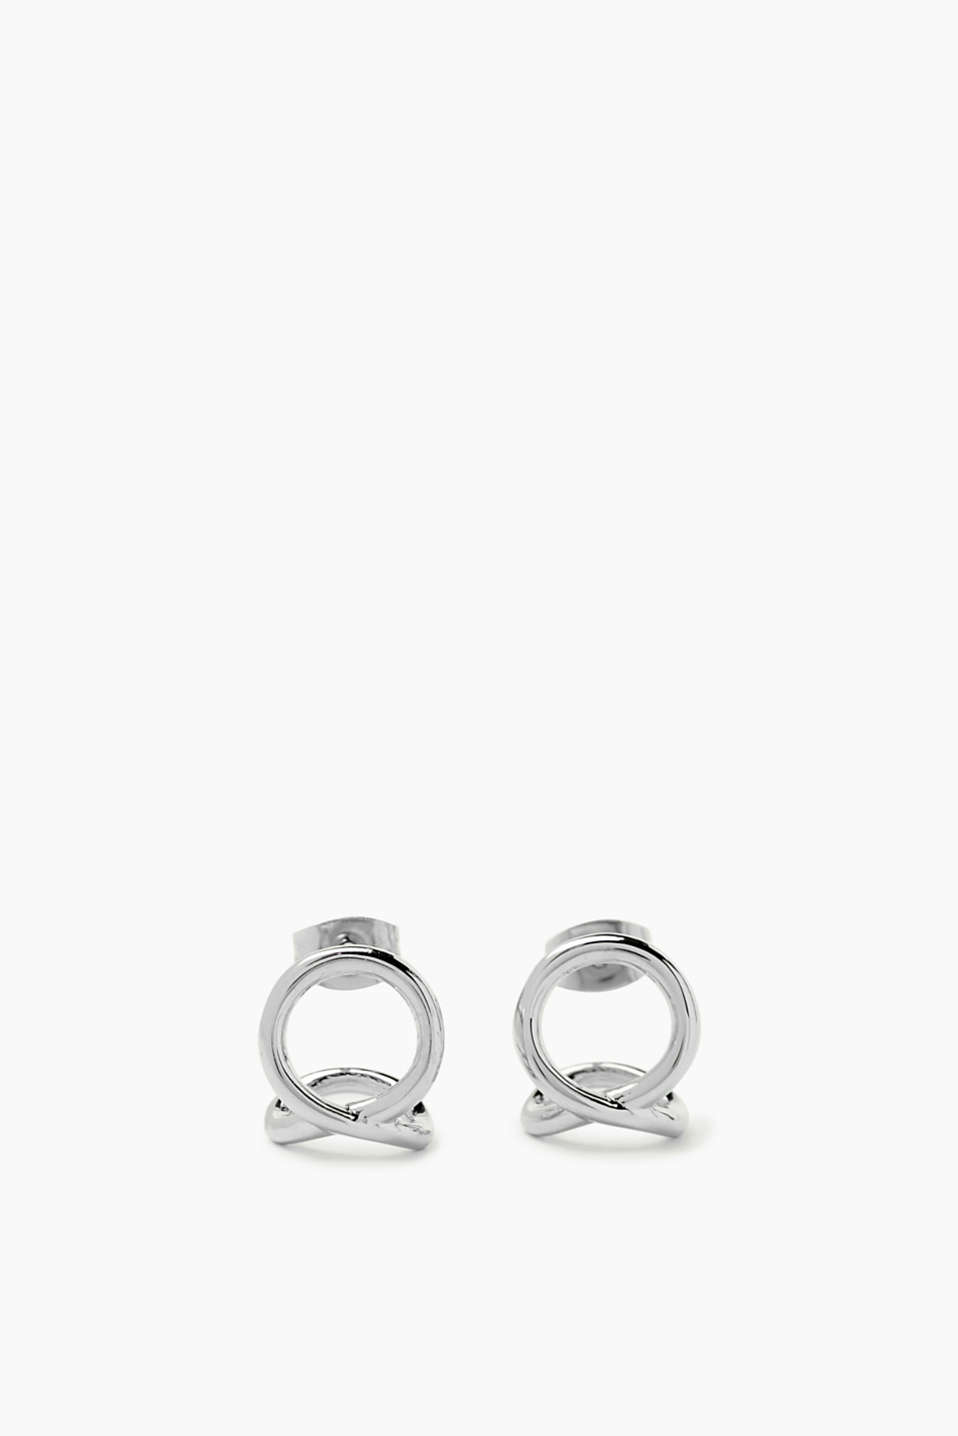 Esprit - High-quality stainless-steel stud earrings